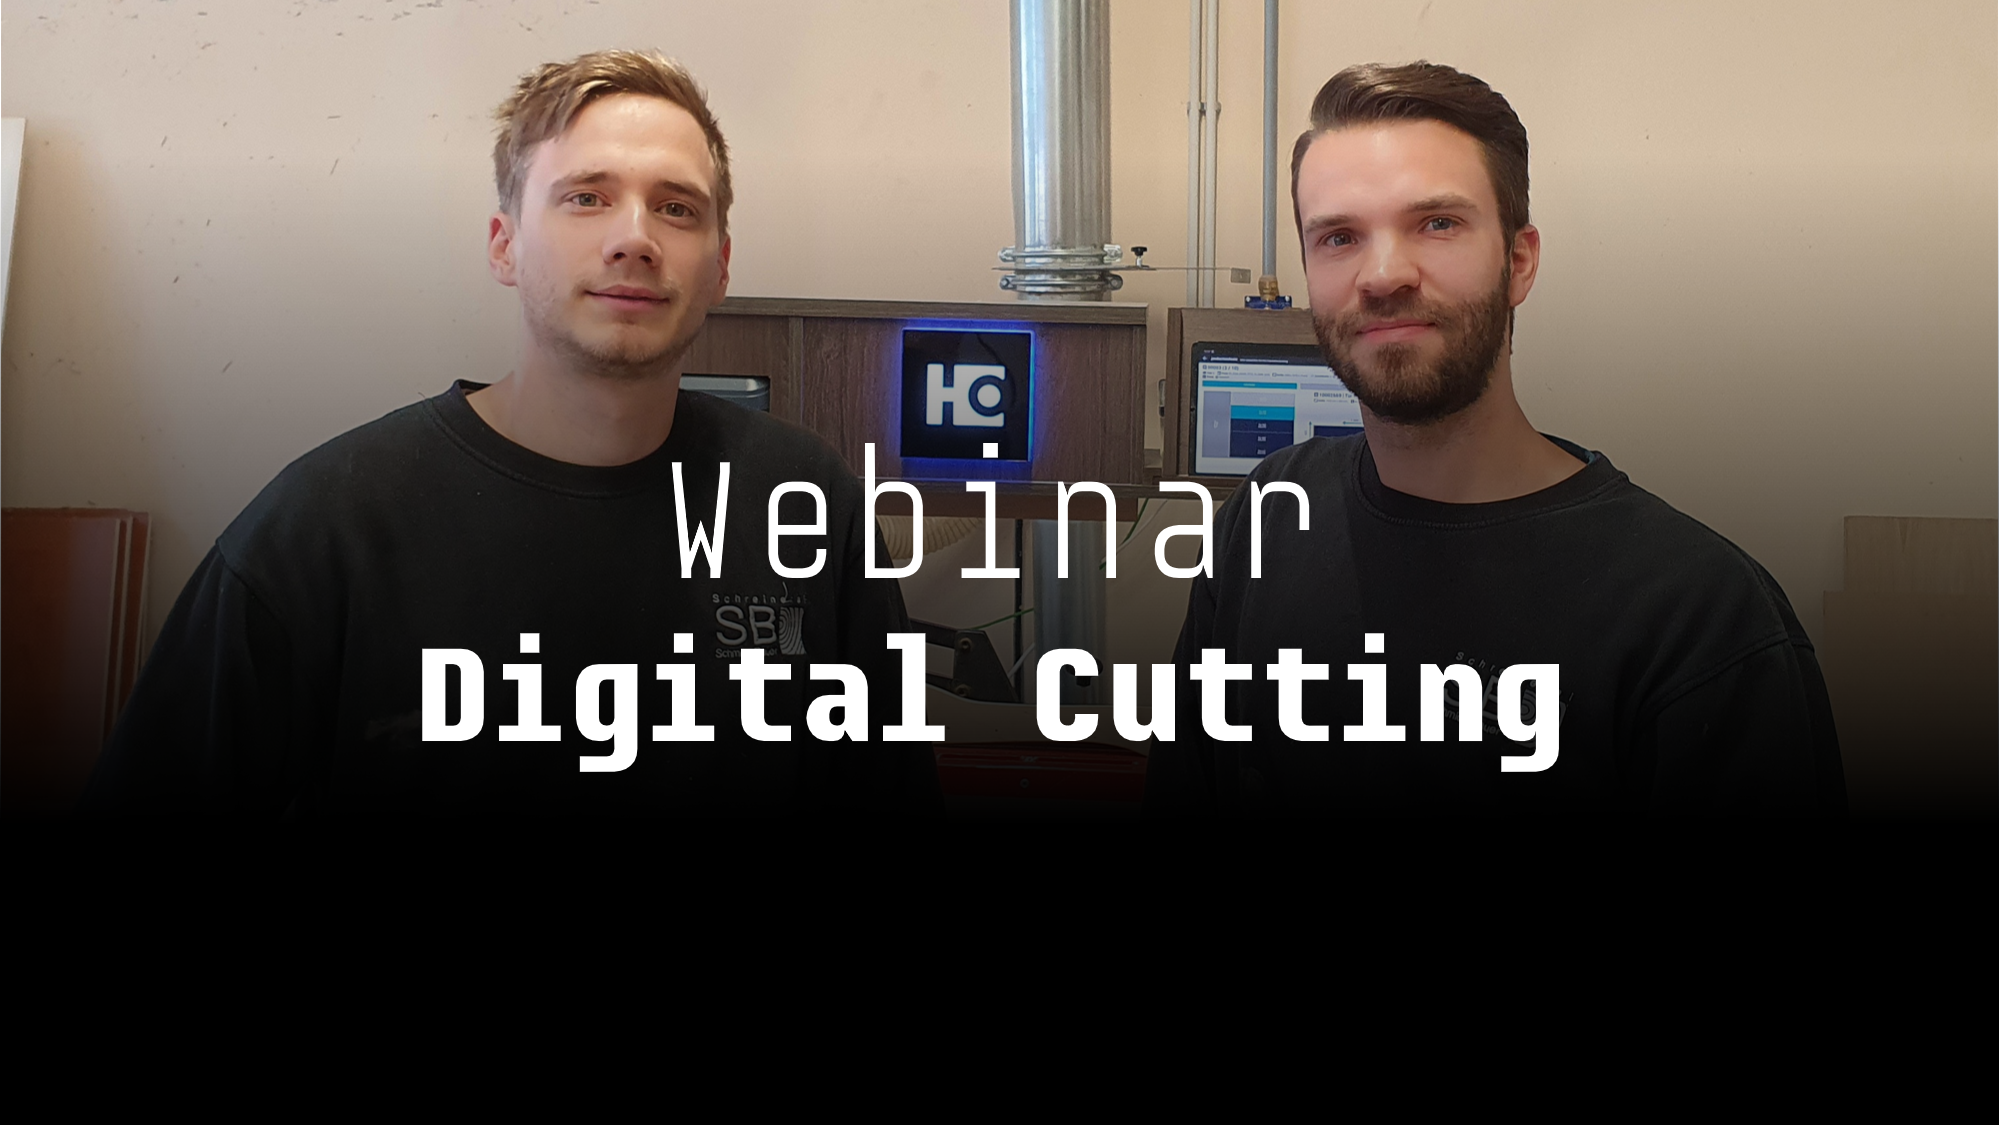 Webinar Digital Cutting for Carpenters and Joiners